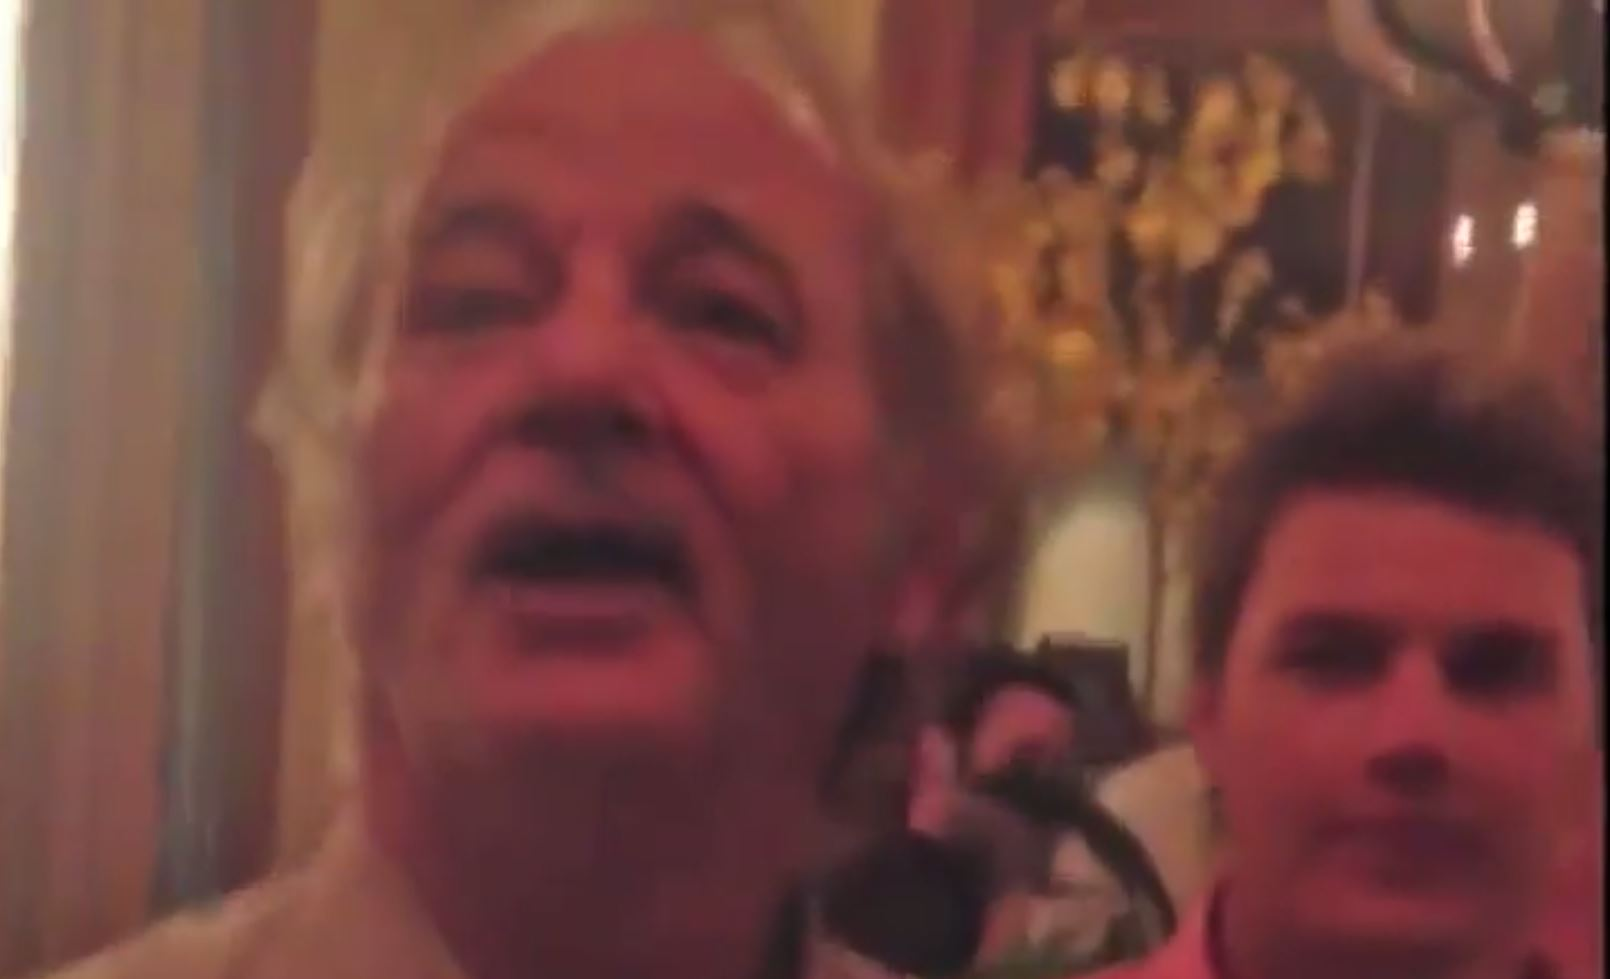 This is what happens when Bill Murray gatecrashes your bachelor party